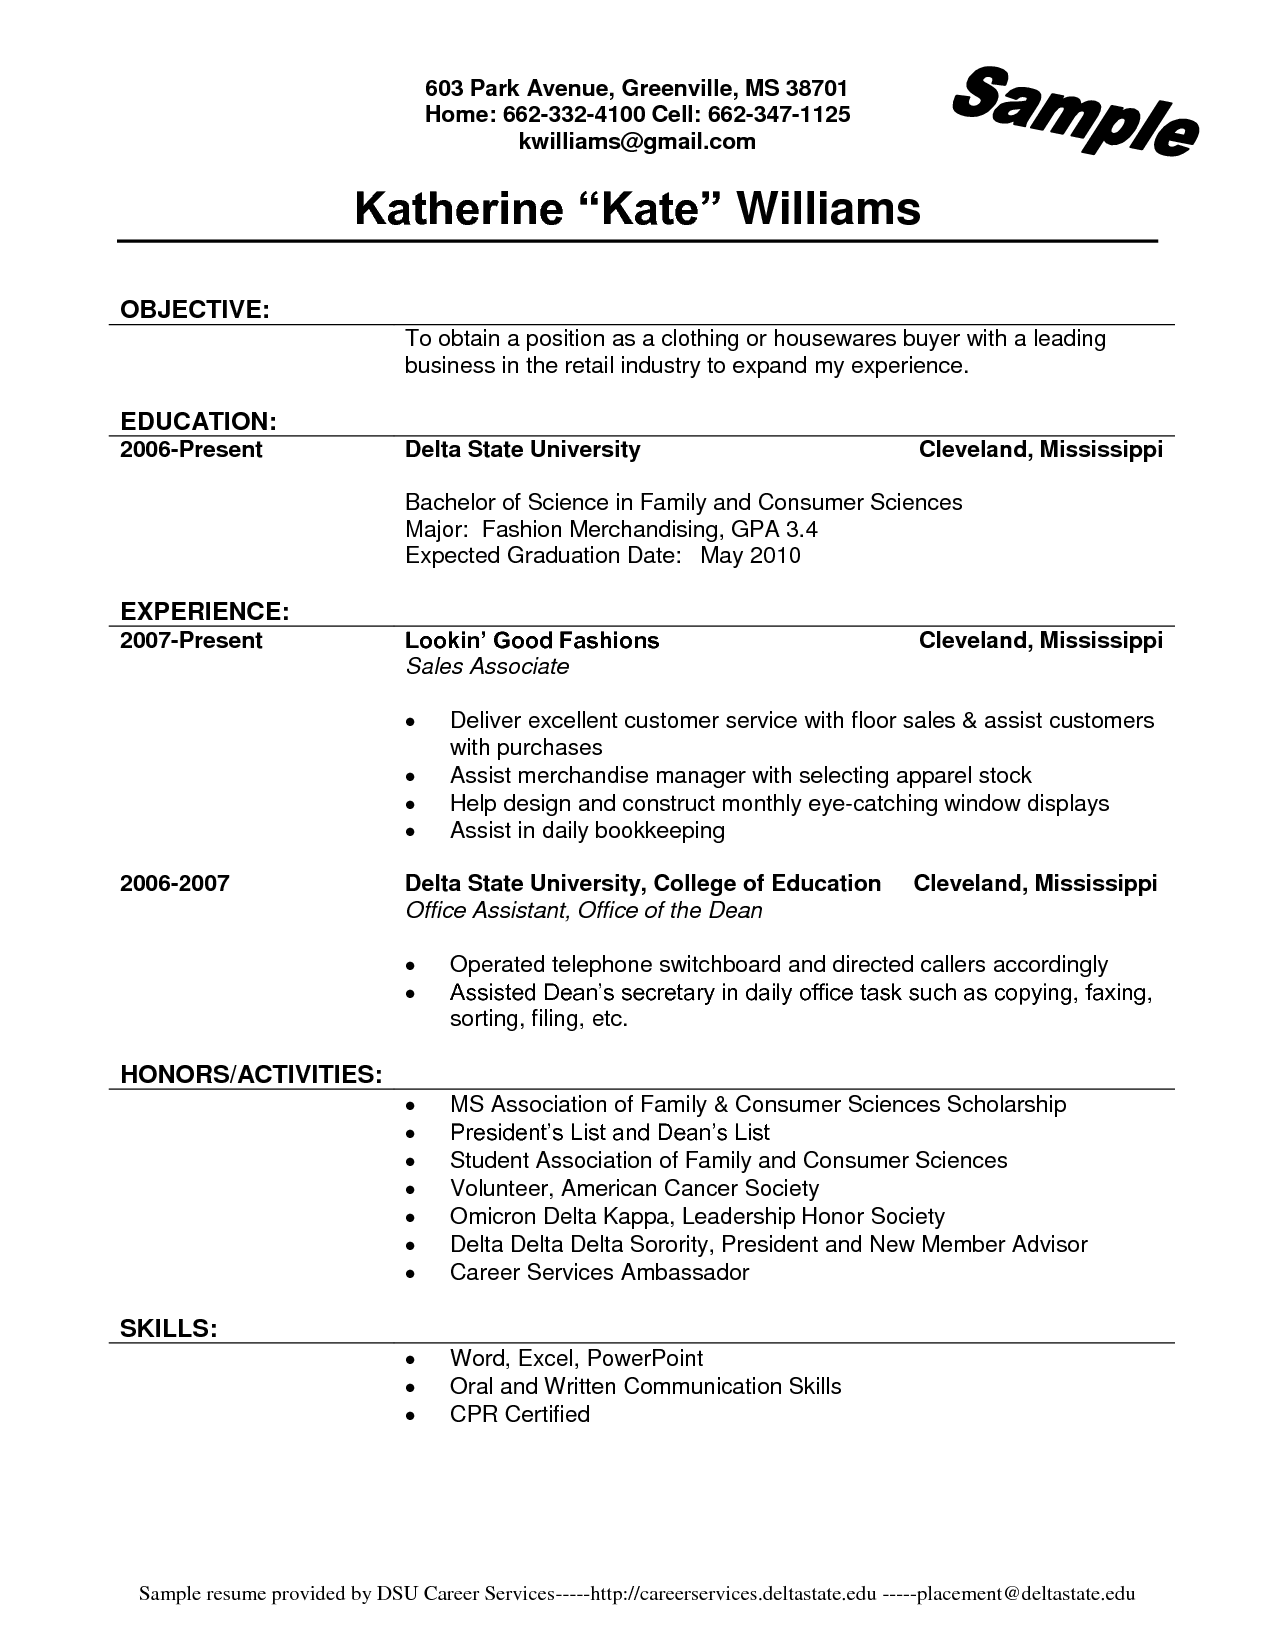 resume Sales Job Description For Resume retail sales resume examples httpwww jobresume websiteretail websiteretail